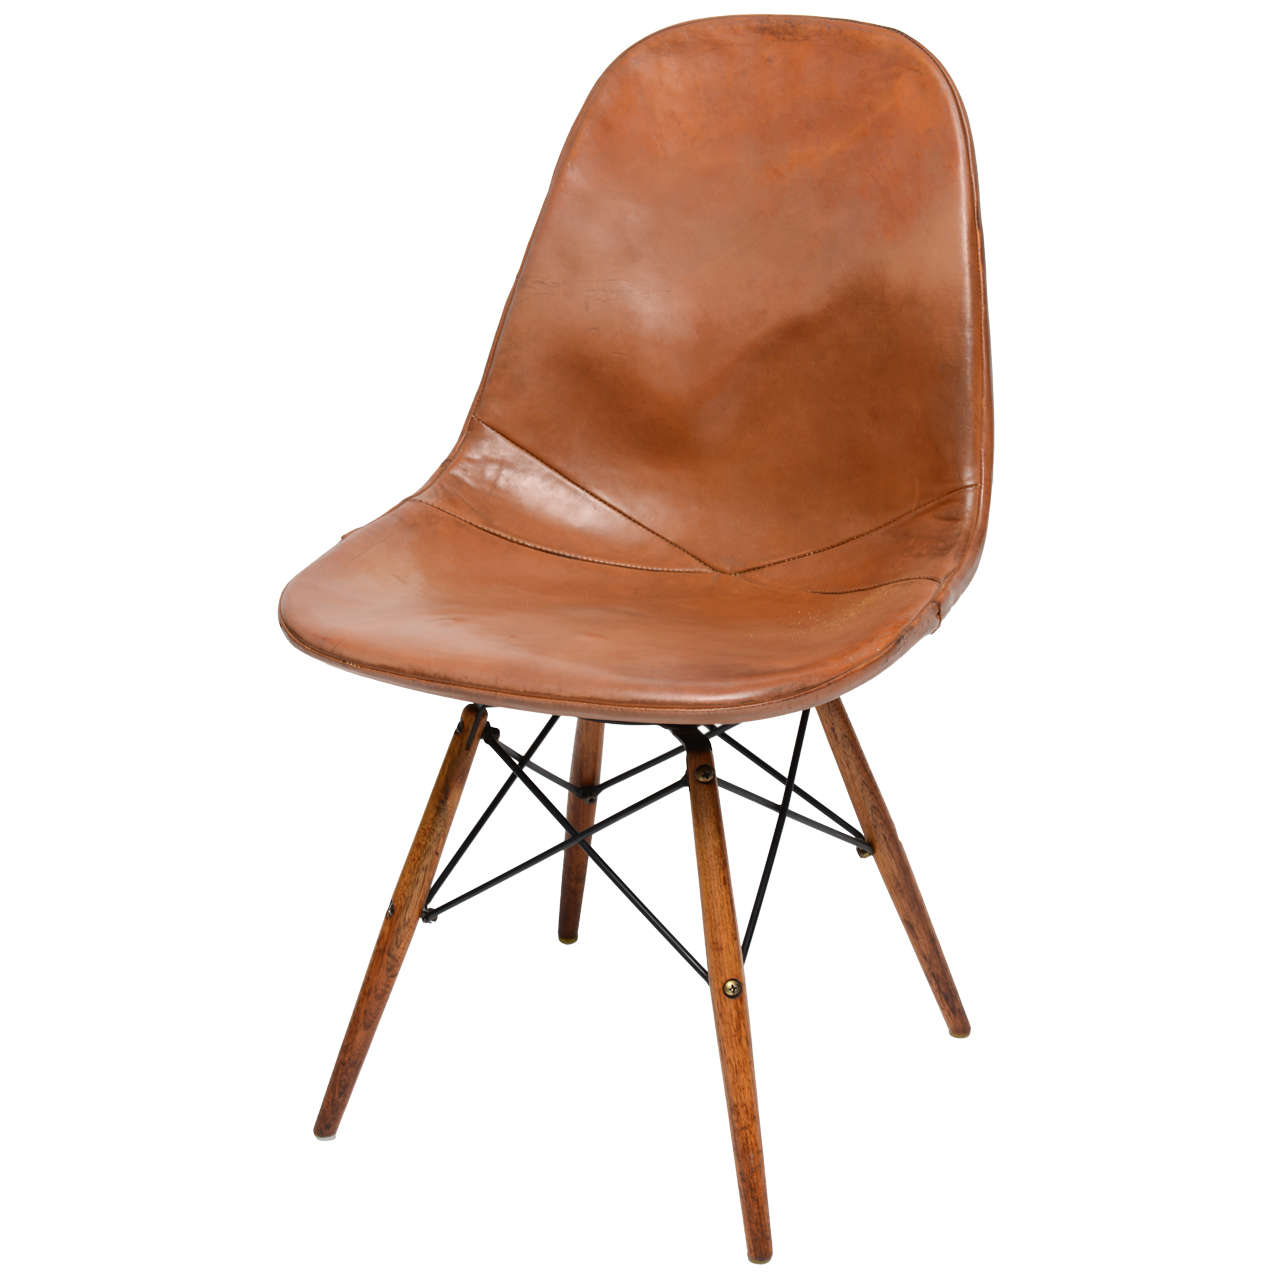 early eiffel tower chair by charles and ray eames for herman miller at 1stdibs. Black Bedroom Furniture Sets. Home Design Ideas